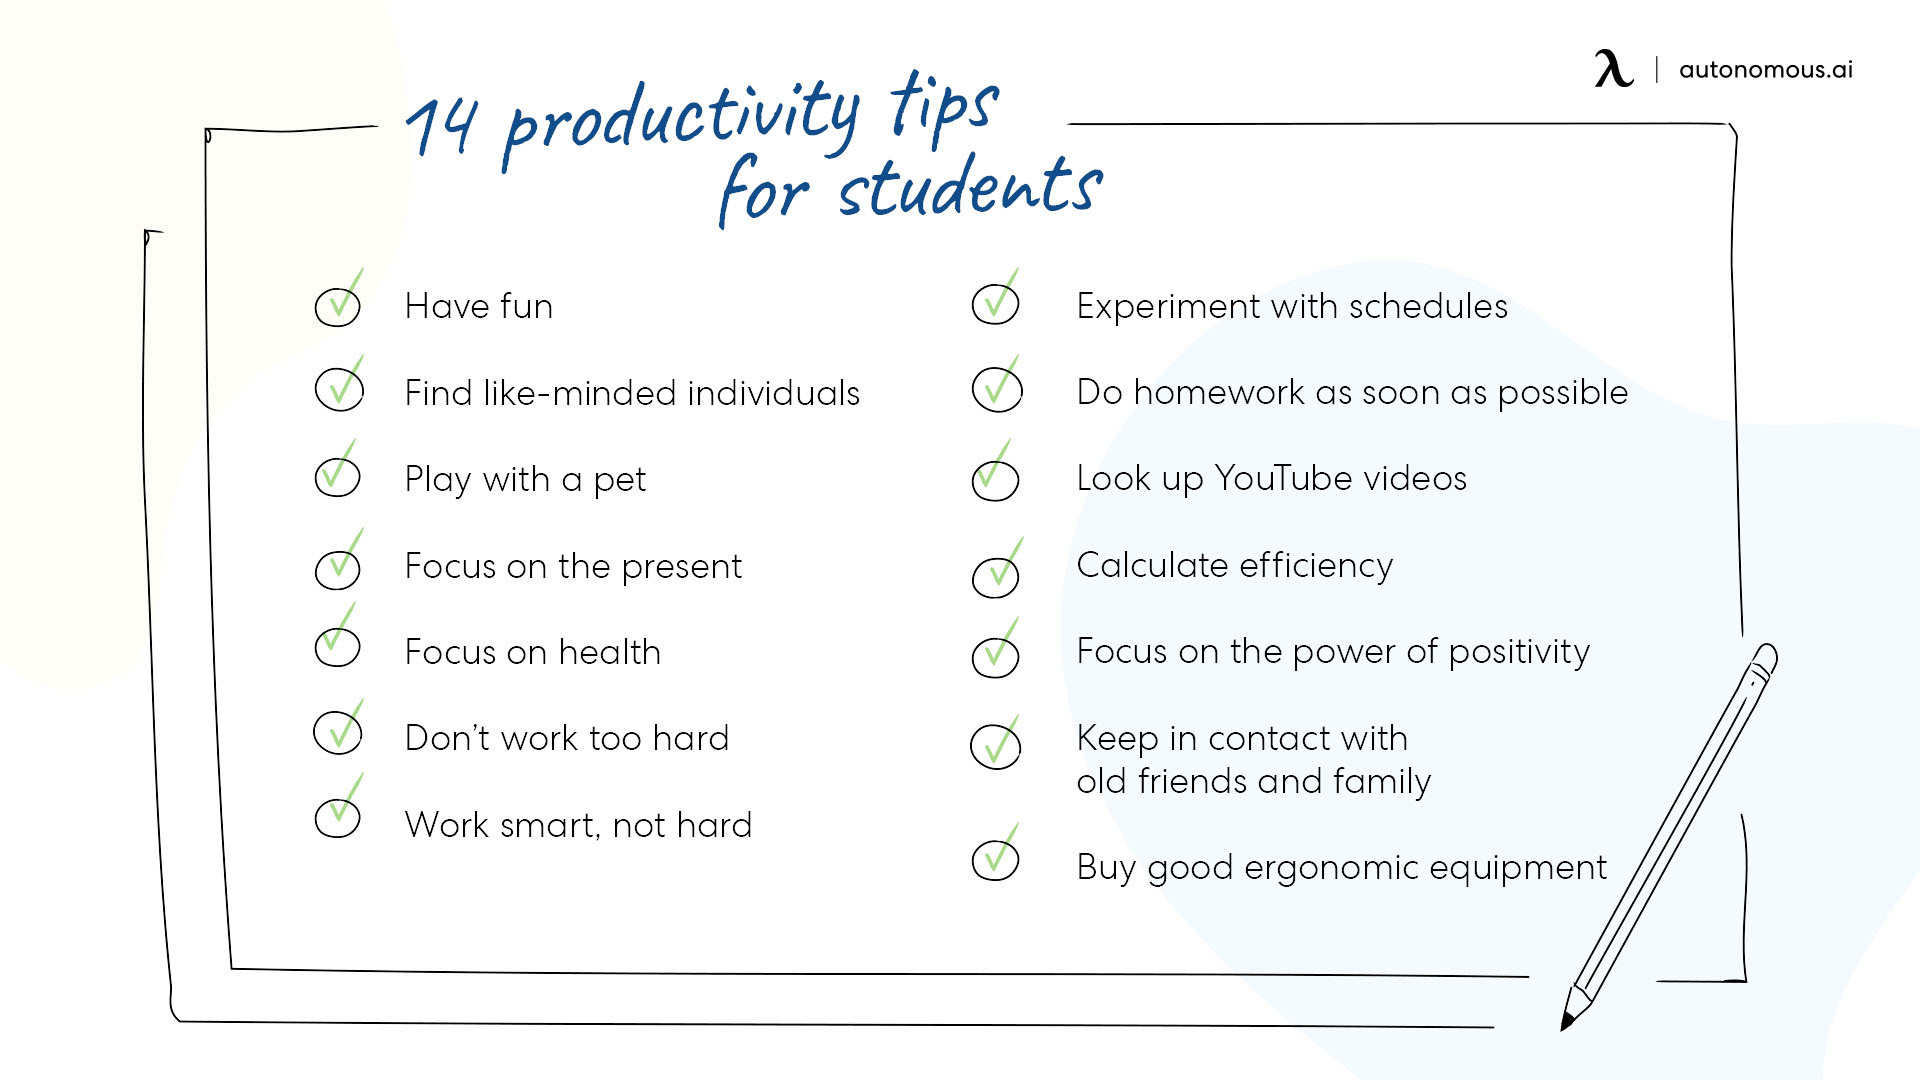 14 productivity tips for students